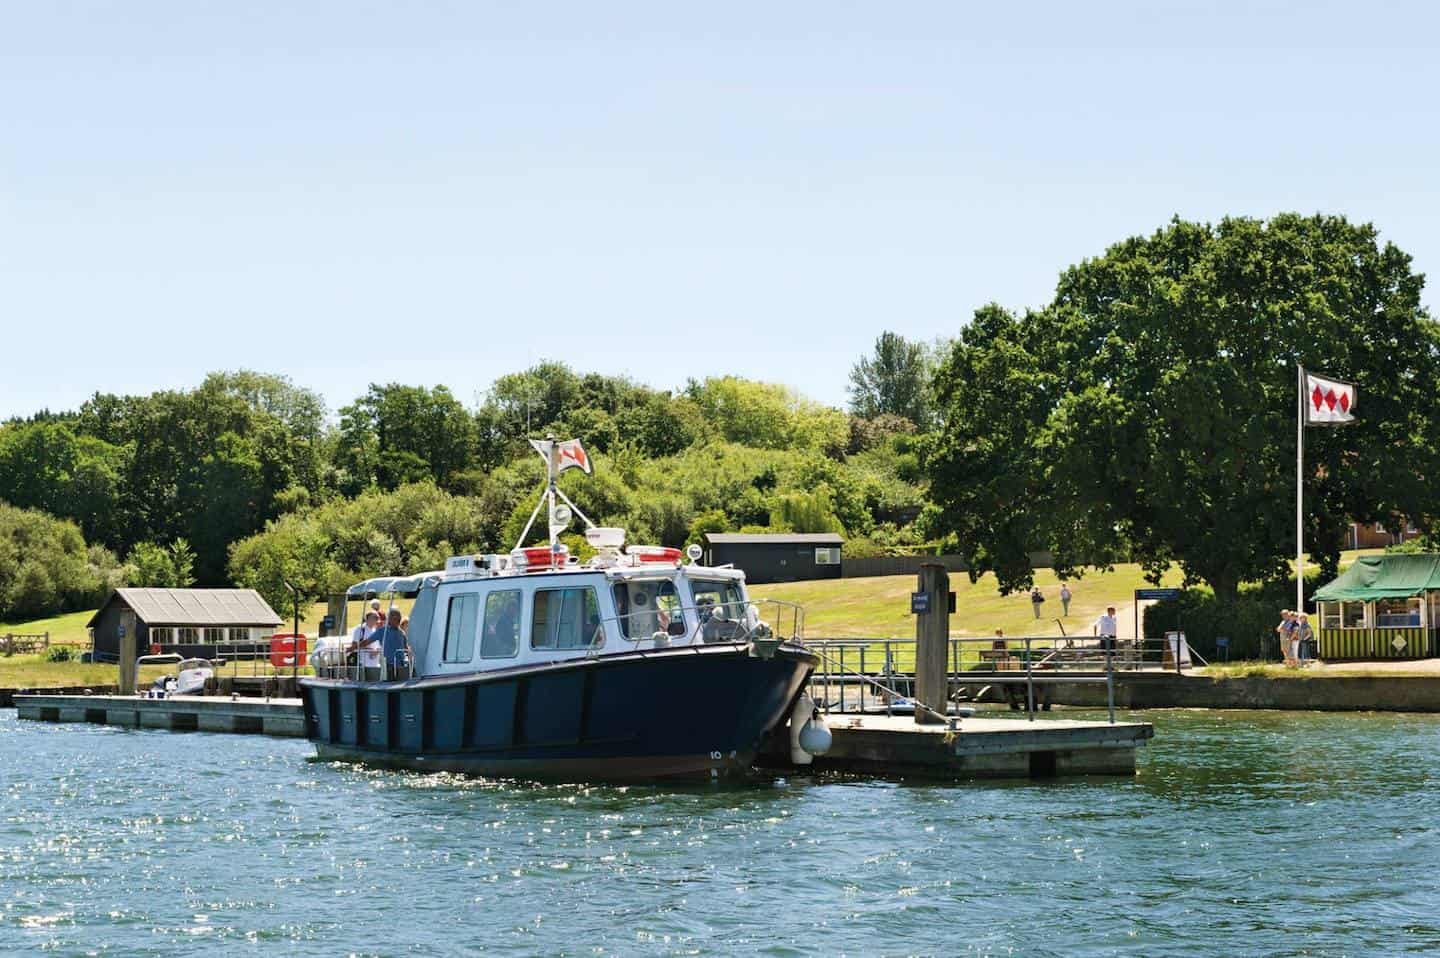 7 Dog-Friendly Things to Do In The New Forest - Bucklers Hard Cruise on the Beaulieu River